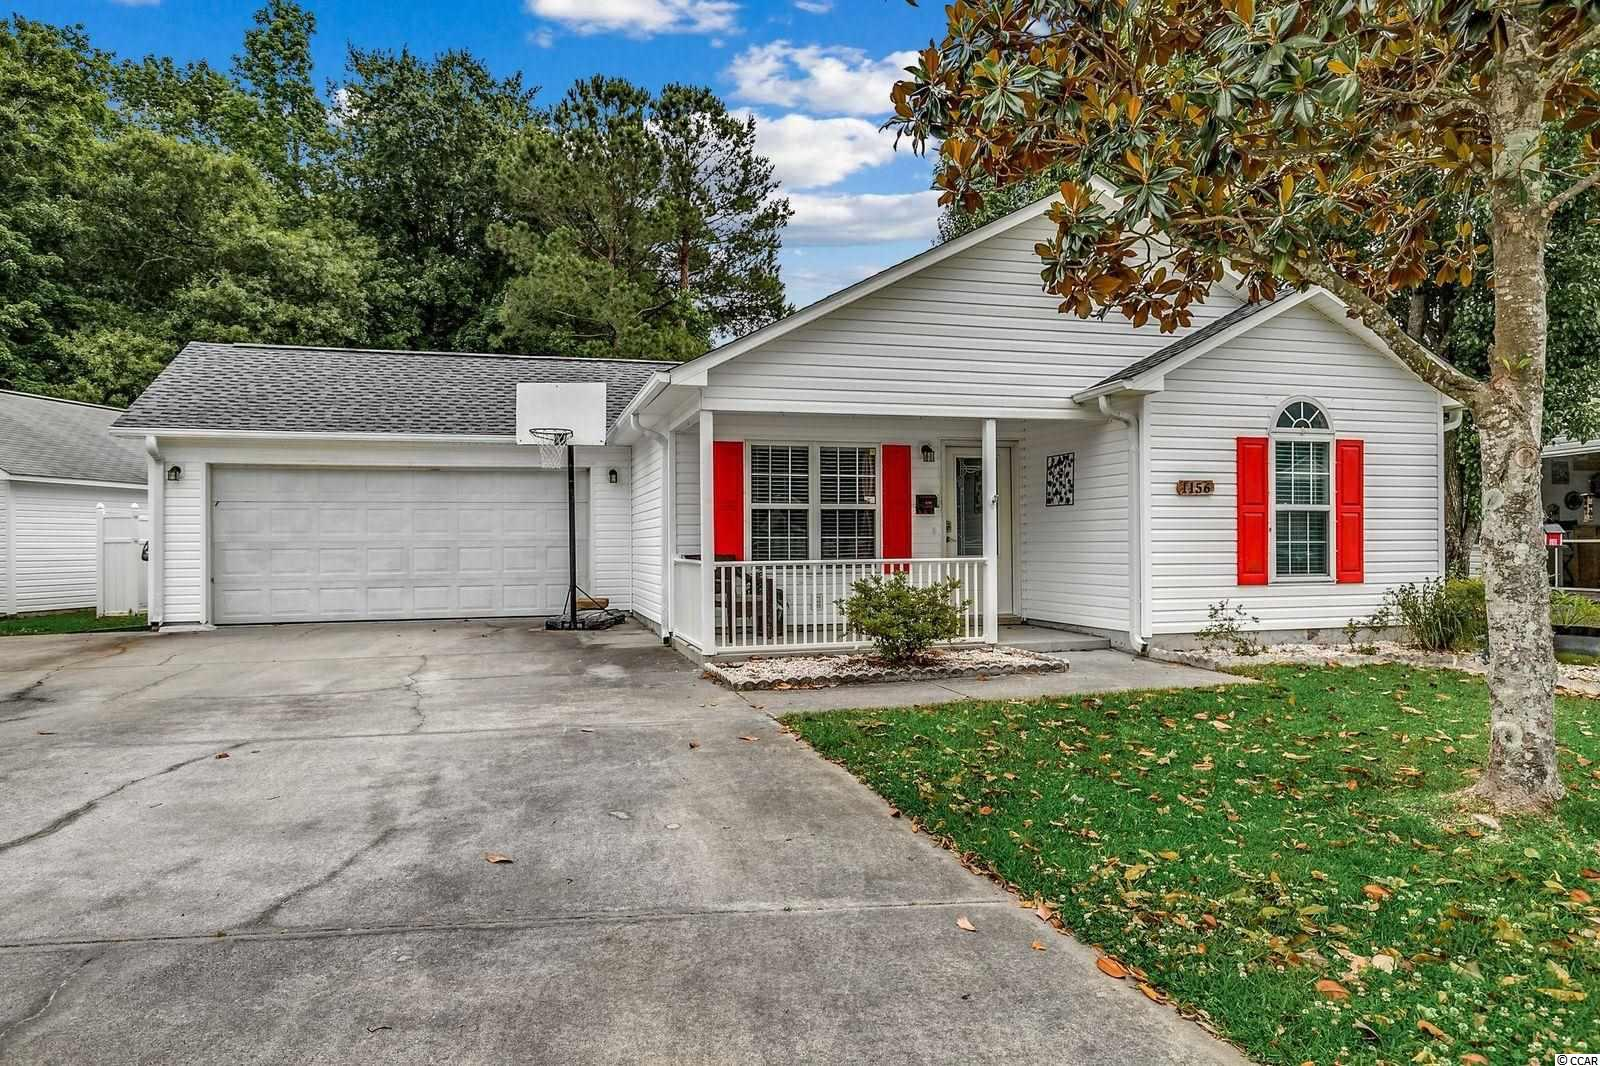 Brand New Roof 2021 , Brand New Master Bath ,Completely replaced HVAC system in  2018, & Hot Water Heater in  2017  !  This well maintained residence boast 4 bedrooms and 2 full baths with laminate  wood floors throughout living area large kitchen with breakfast bar, Carolina Room , 2 Car Garage with large driveway and a large fenced in private backyard!  Just minutes to the Atlantic Ocean, Murrells Inlet Marsh Walk, Publix, Golf Courses etc!